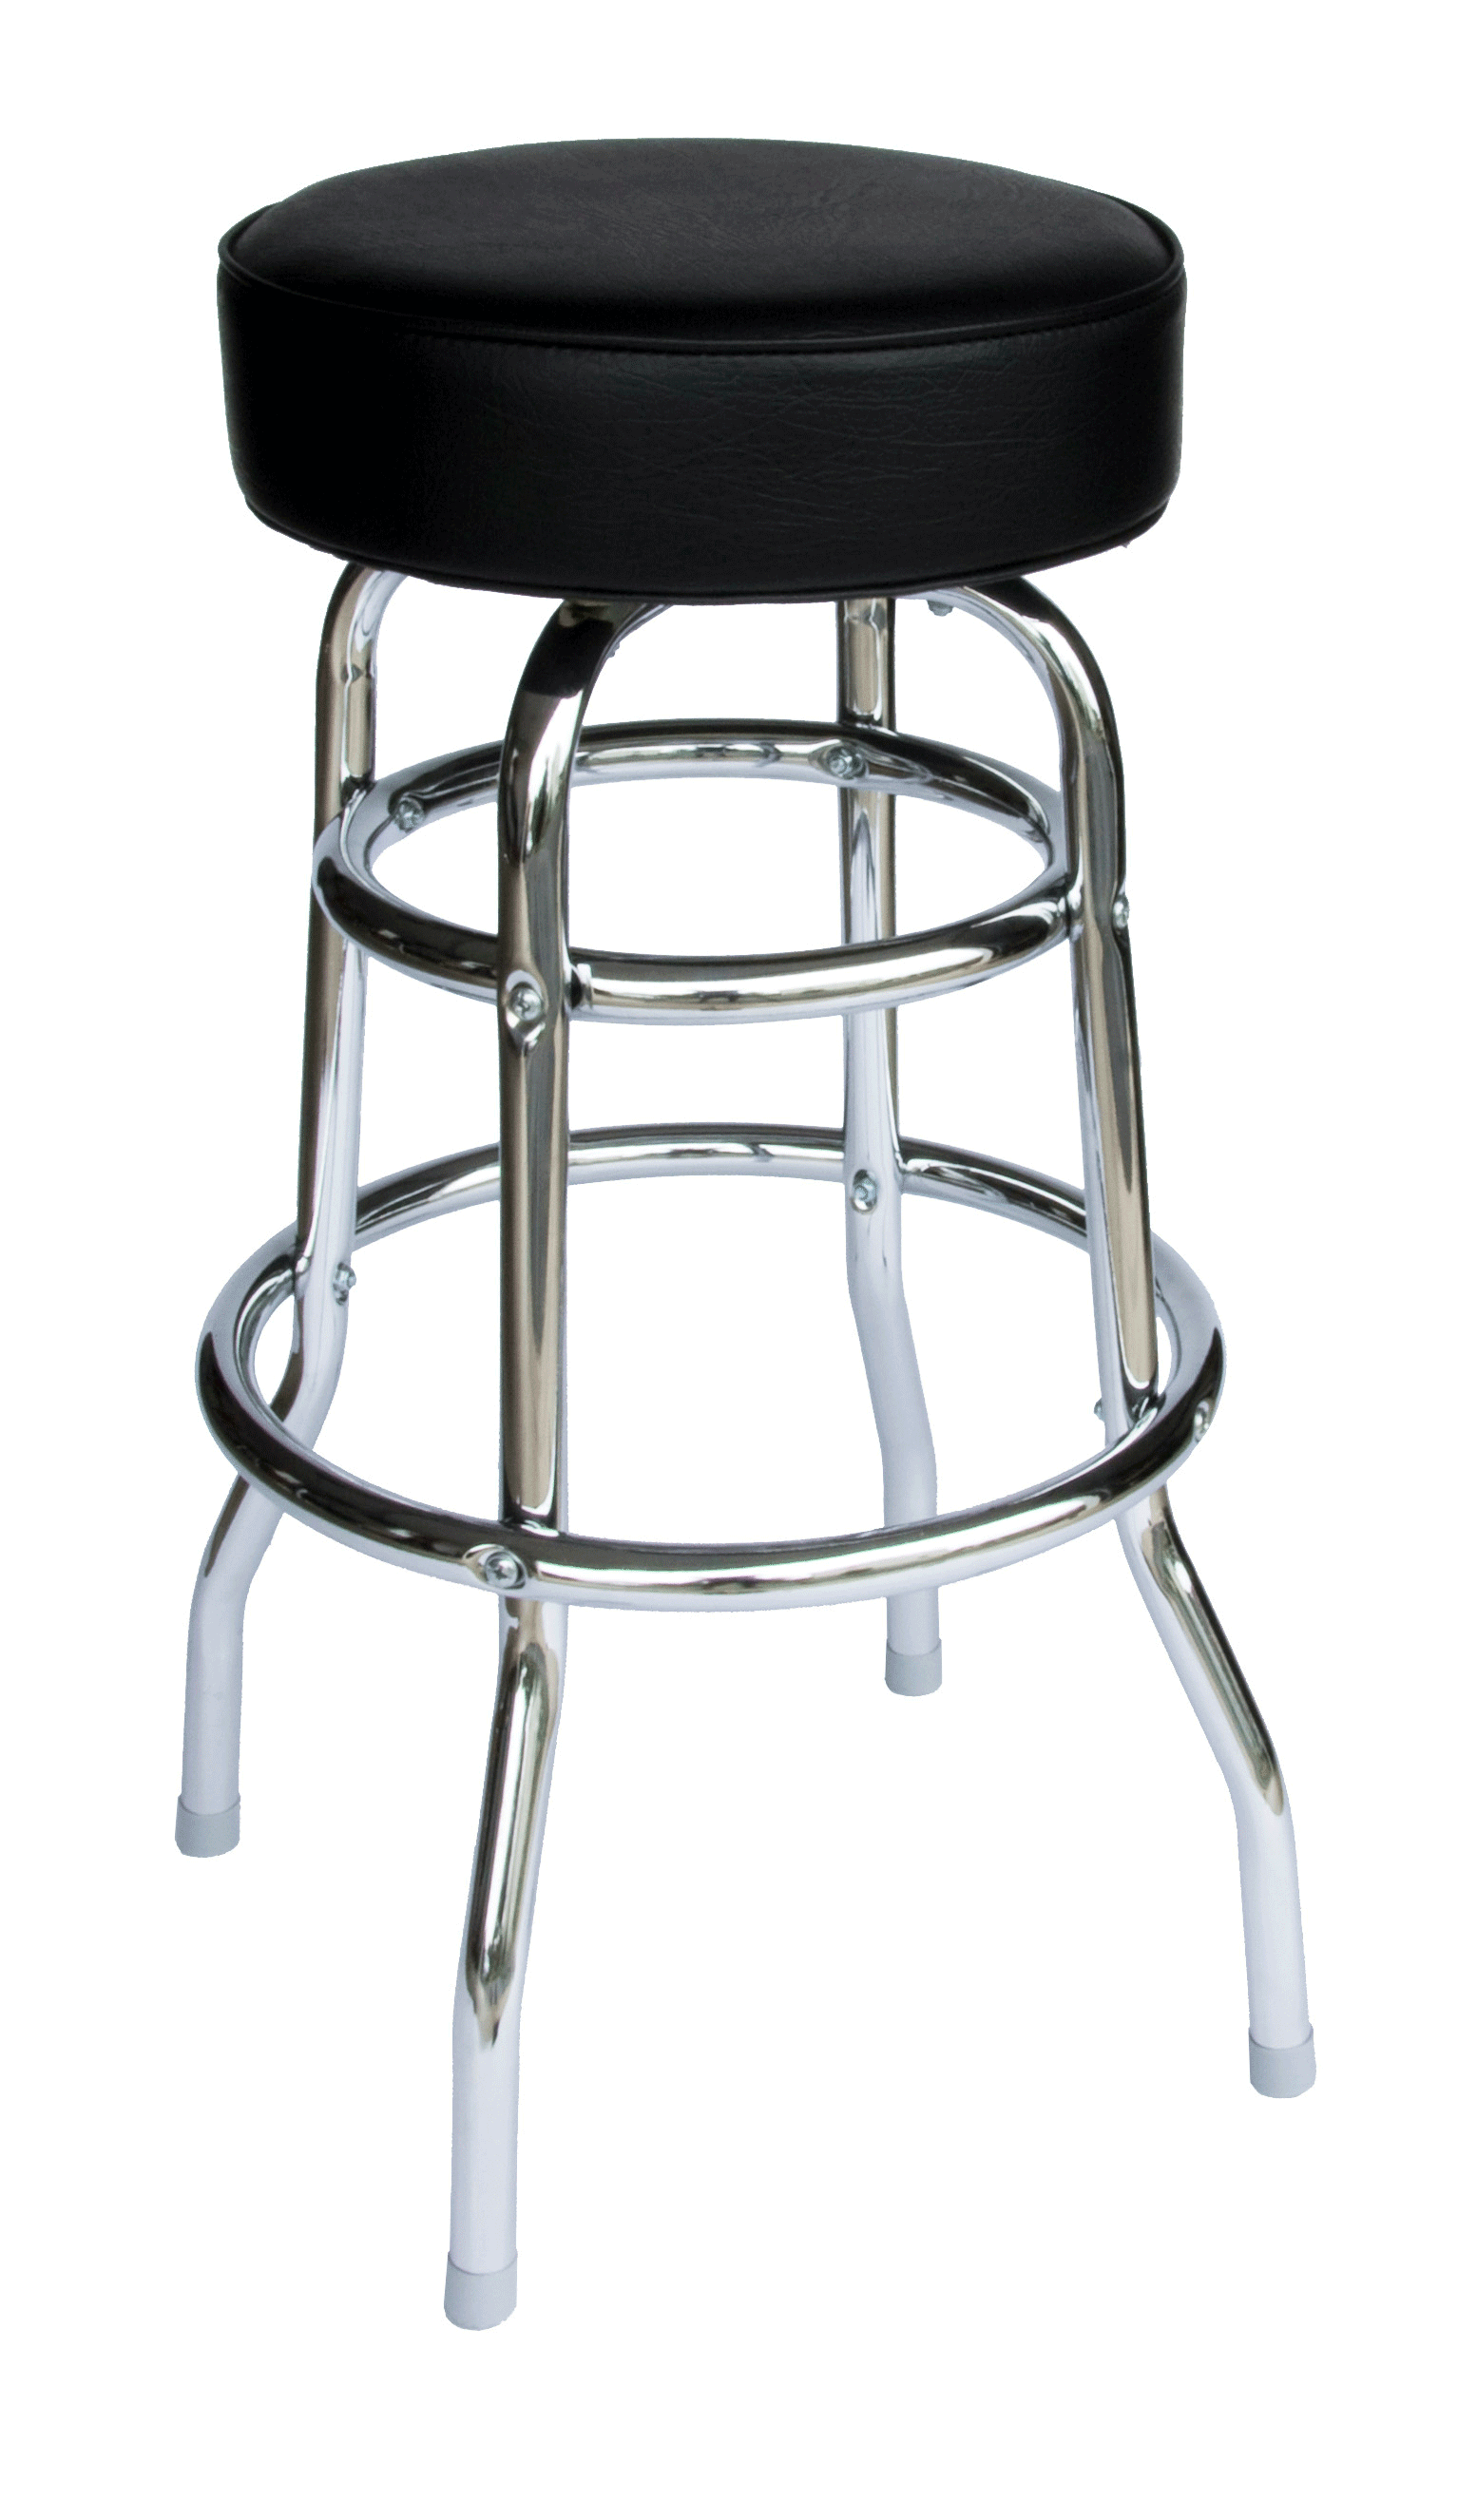 BFM Galena Indoor Restaurant Double Ring Chrome Barstool